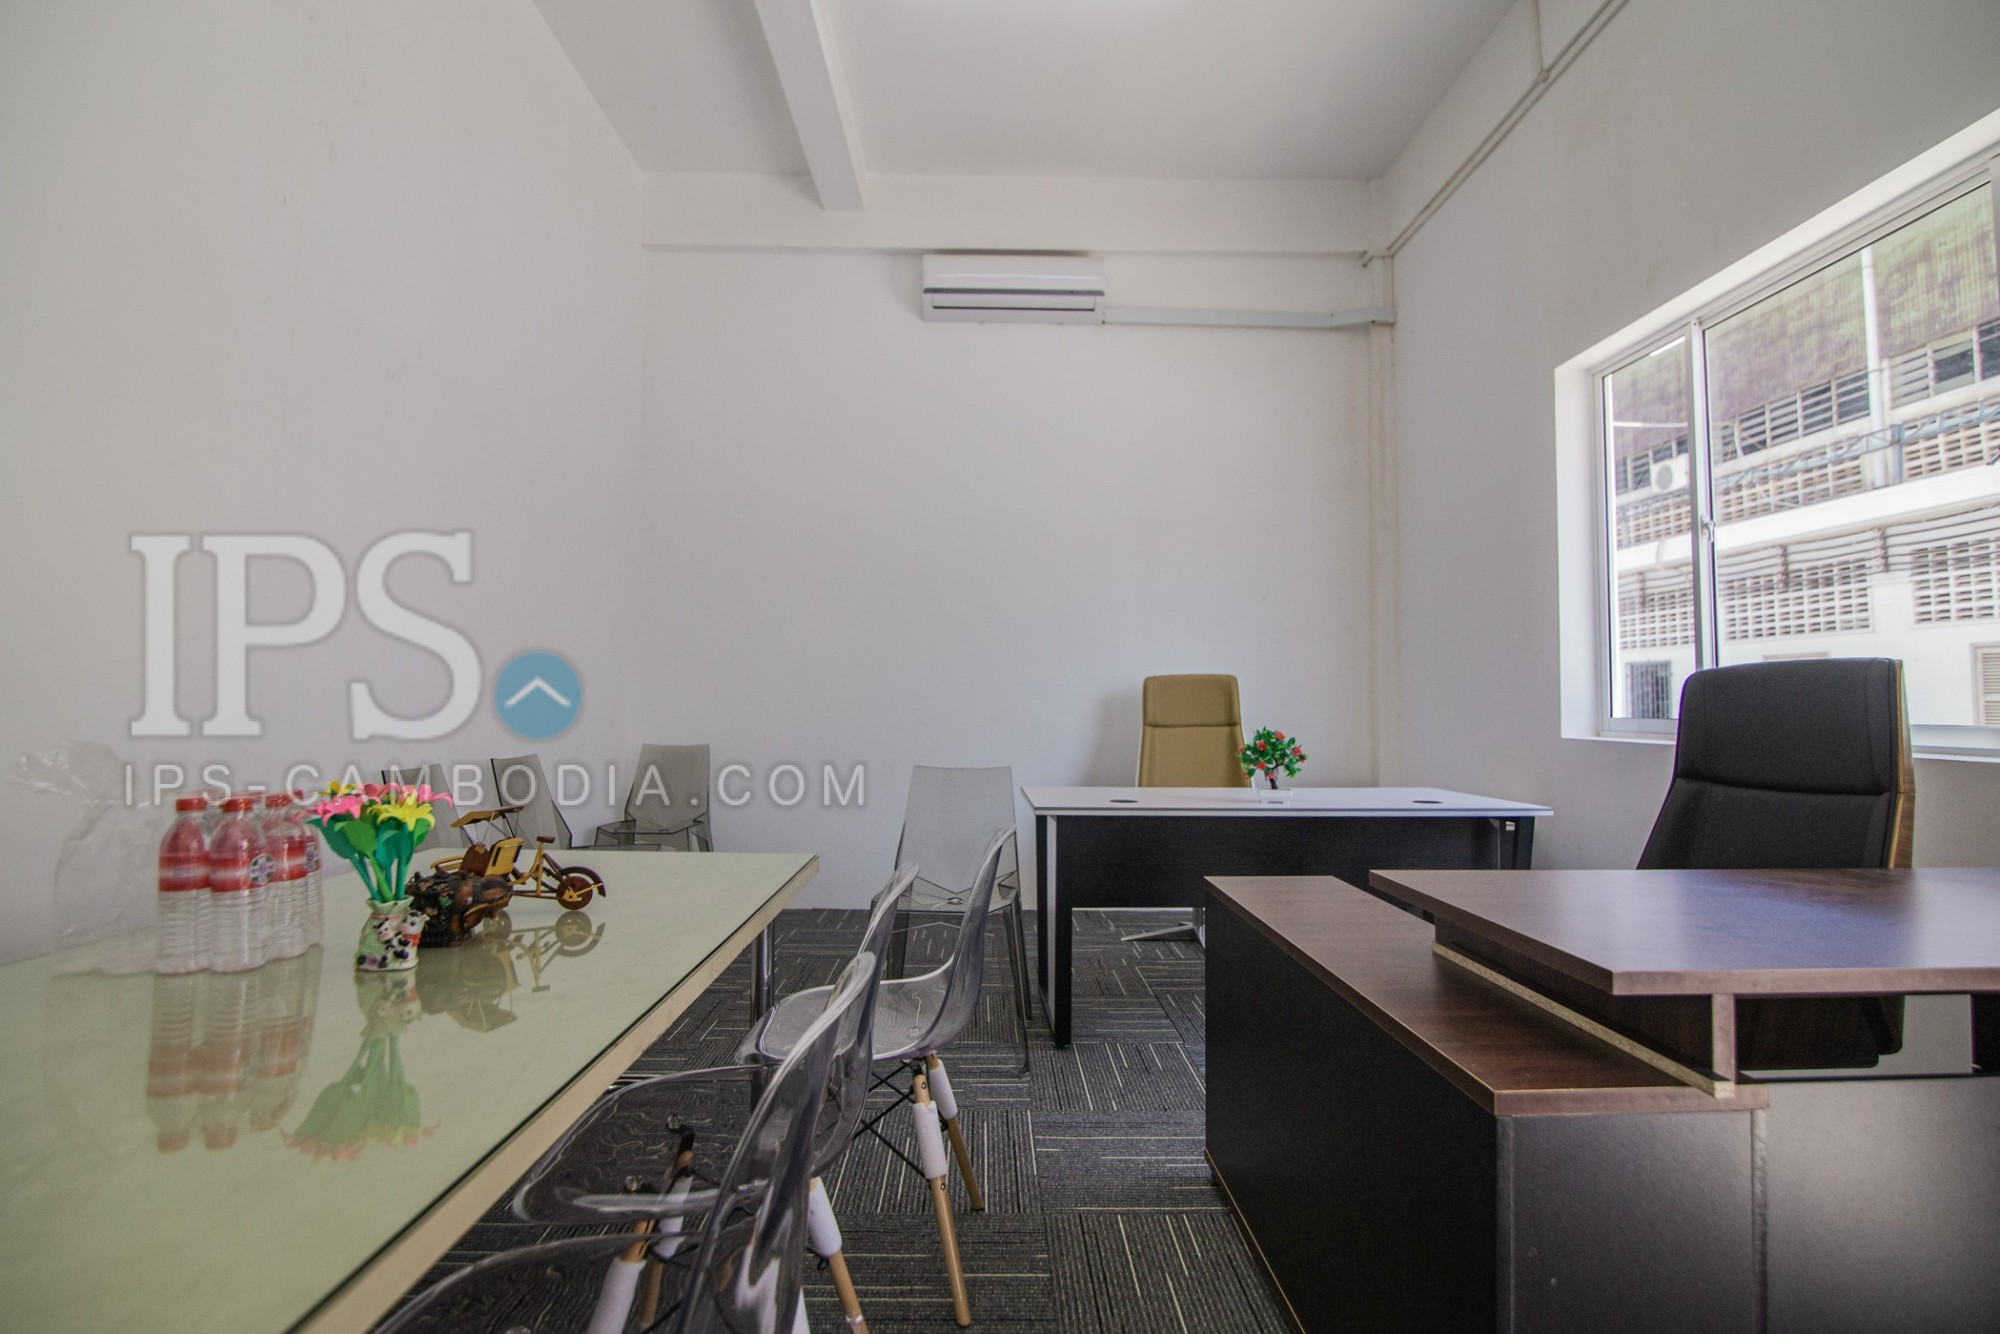 72 Sqm. Serviced Warehouse And Office Space For Rent - Chak Angrae Kraom, Phnom Penh